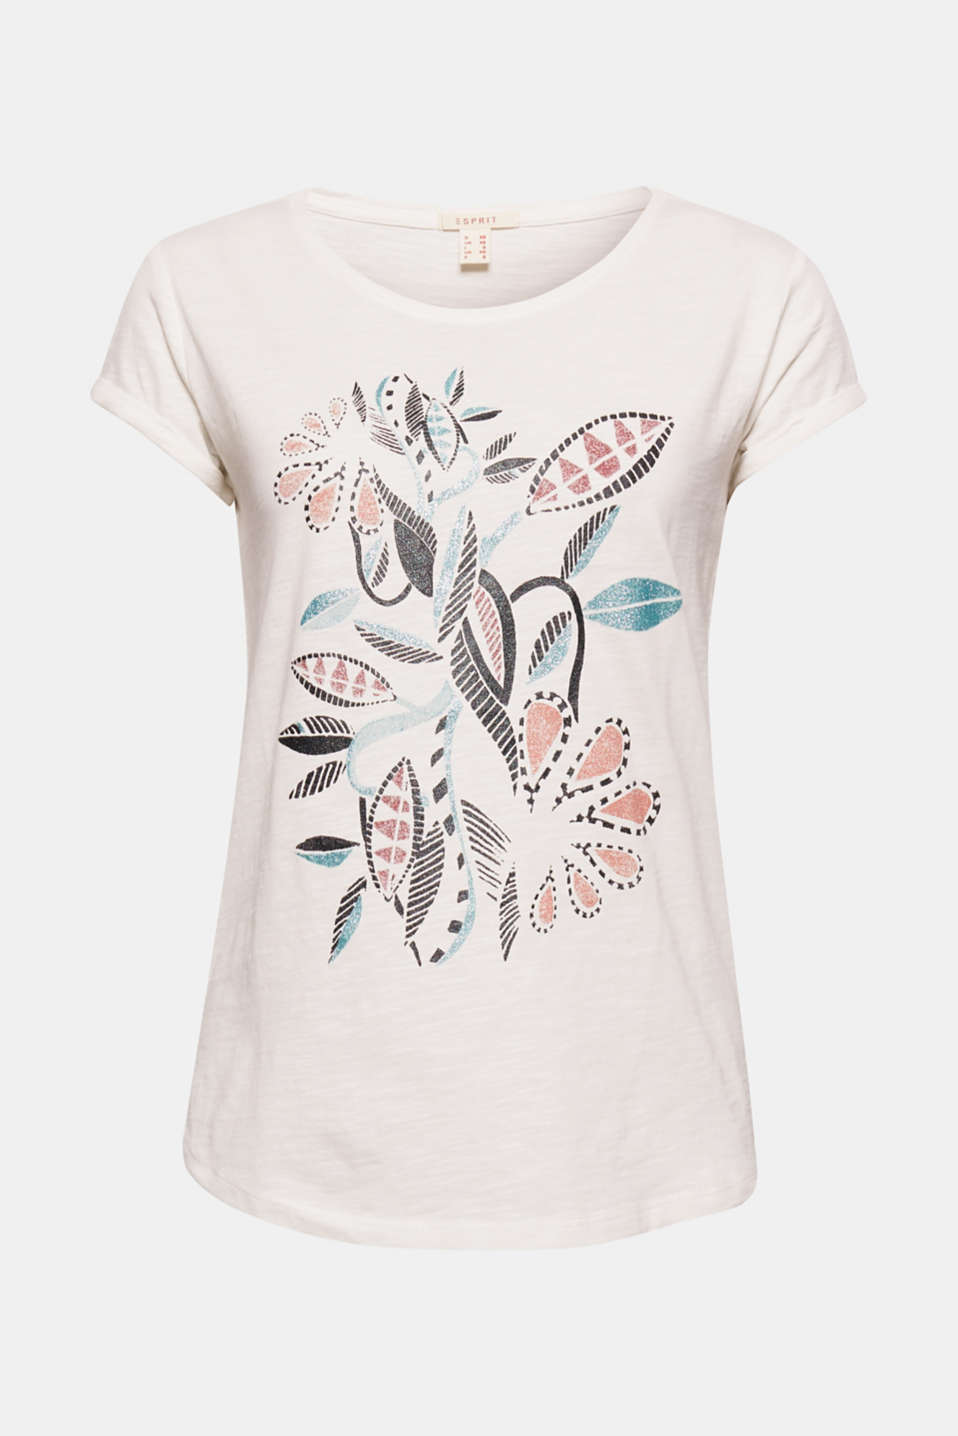 A radiant summer highlight! This melange jersey t-shirt stands out with its artistic floral print on the front.